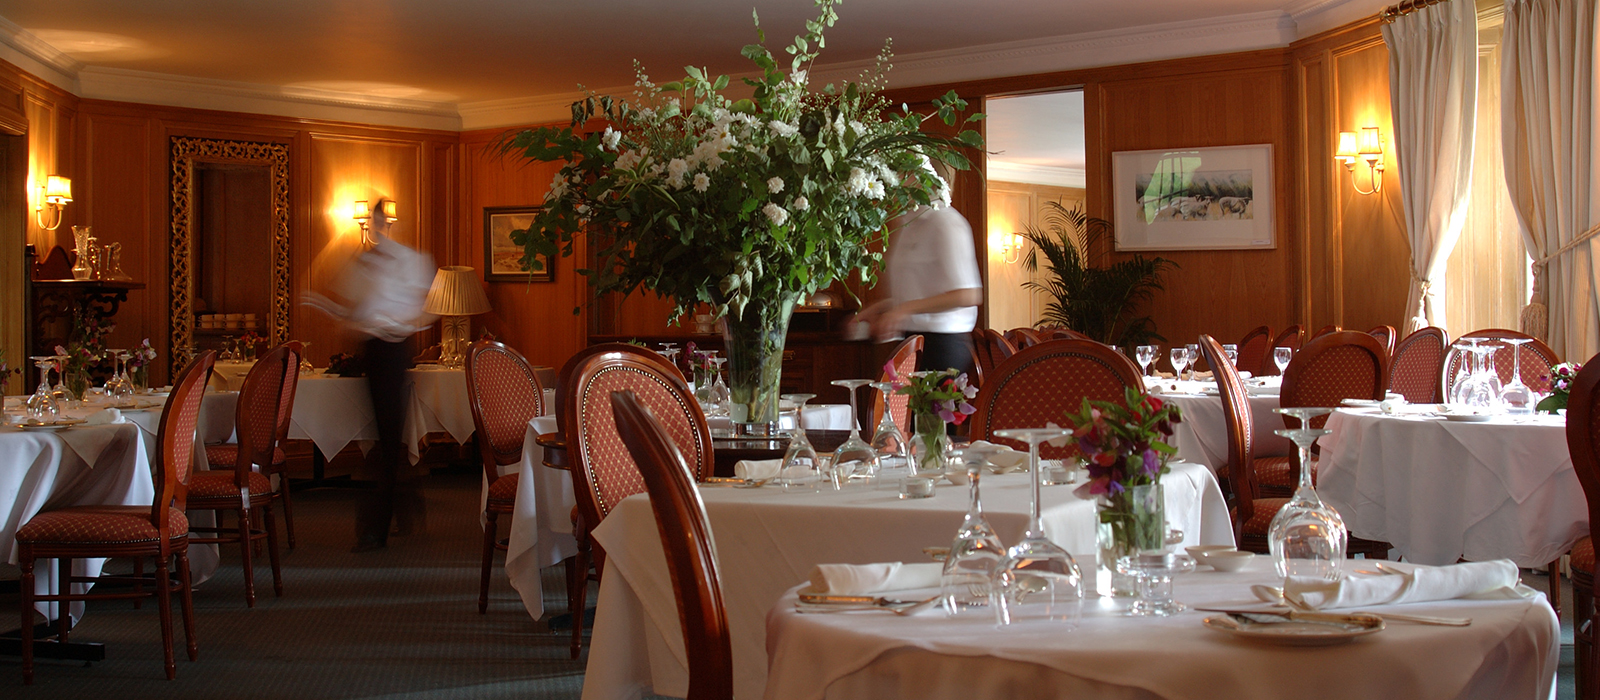 Rathsallagh House Country House Lodgings Restaurant Co